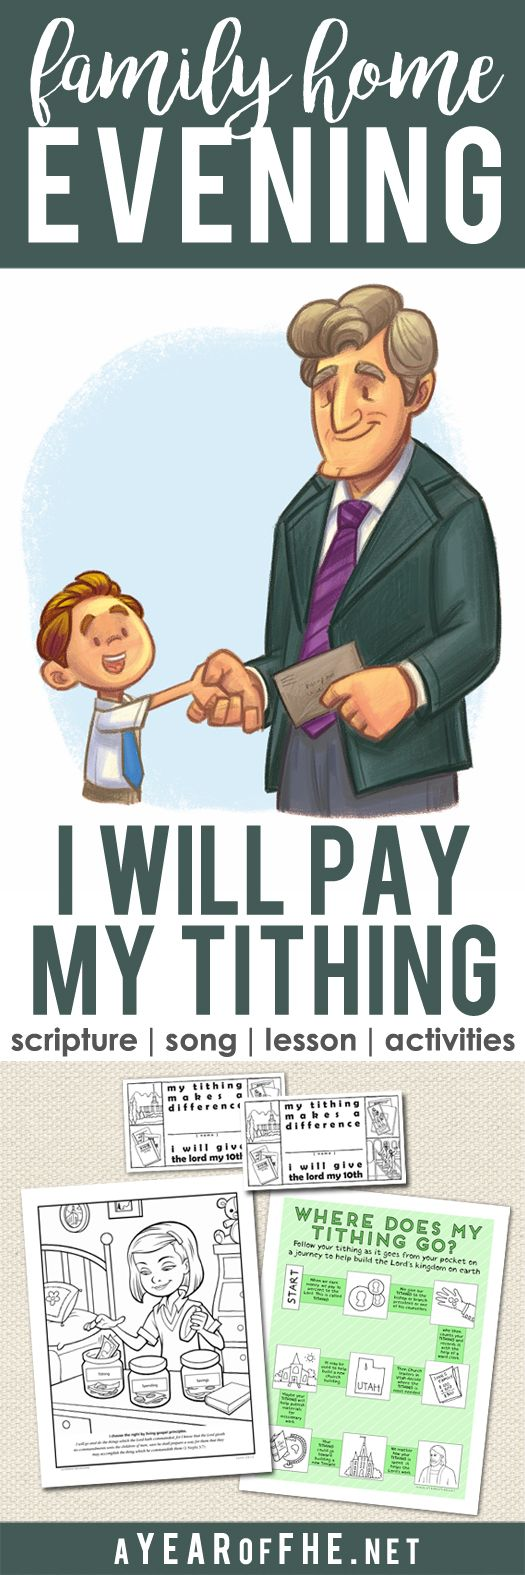 A Year of FHE // A Family Home Evening about how and why we pay tithing & the many blessings we get when we pay tithing. #lds #familyhomeevening #tithing